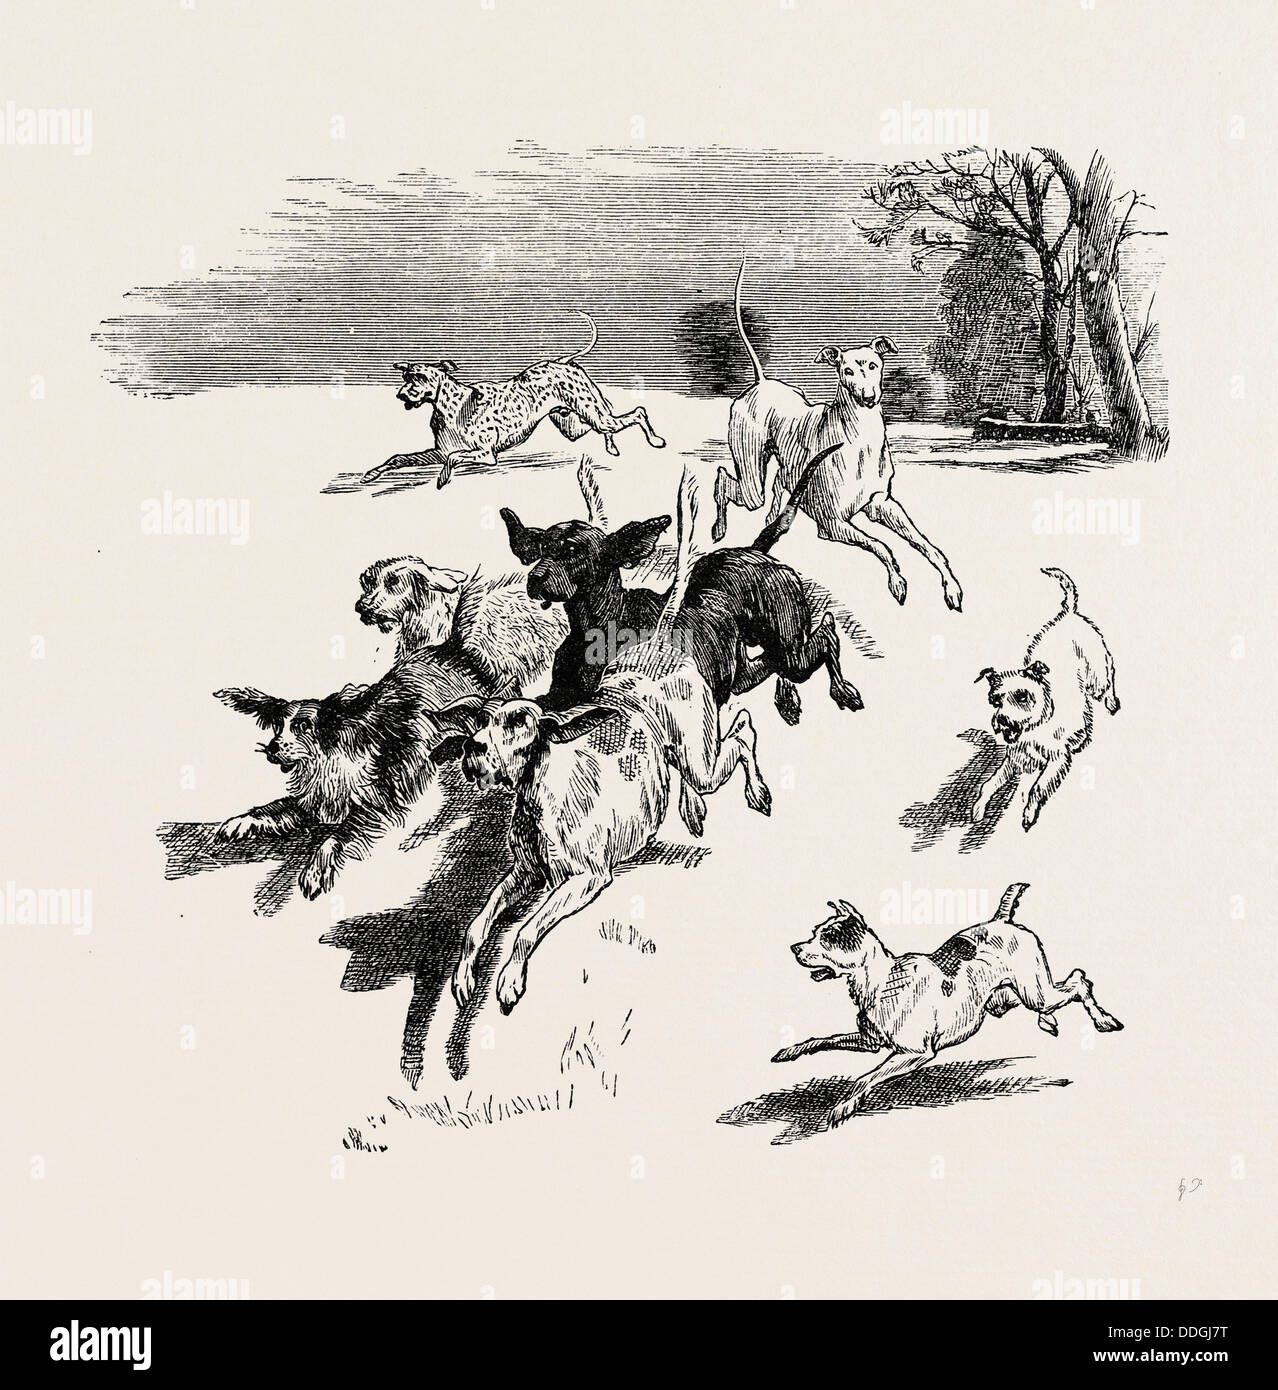 A TROOP OF DOGS, 19th century - Stock Image